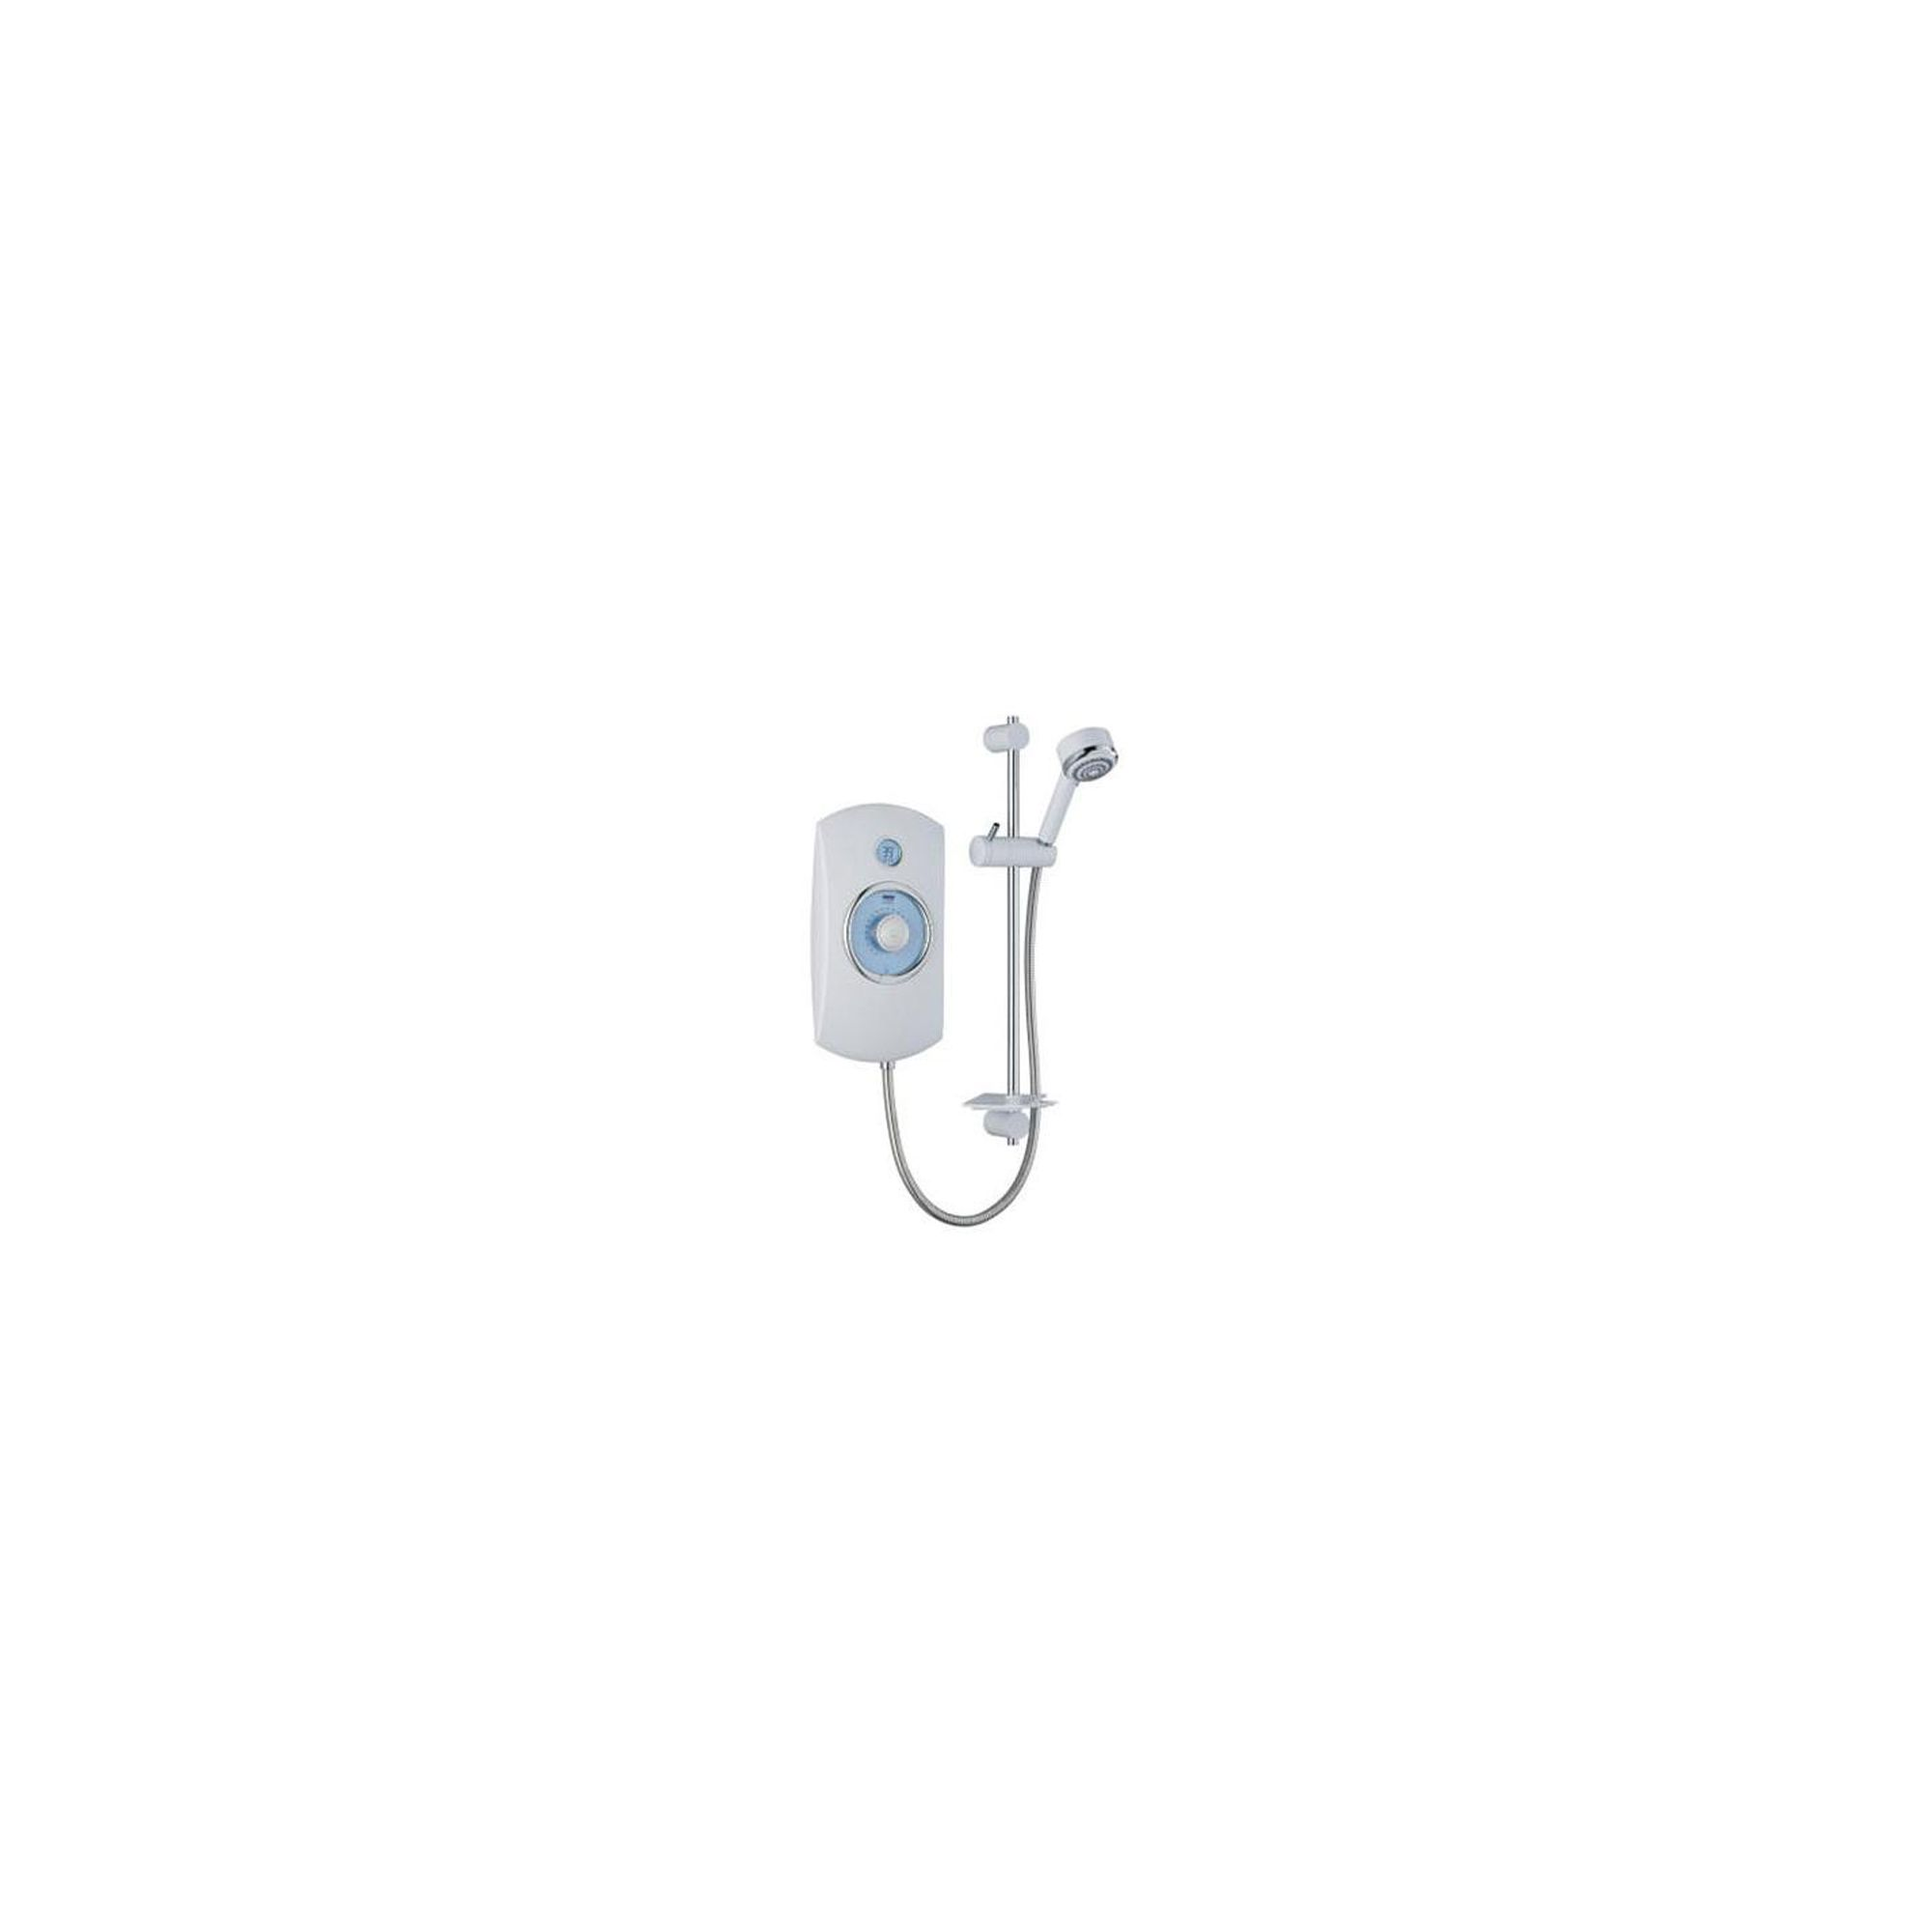 Mira Orbis 10.8 kW Electric Shower, Time and Temperature Display, White at Tesco Direct